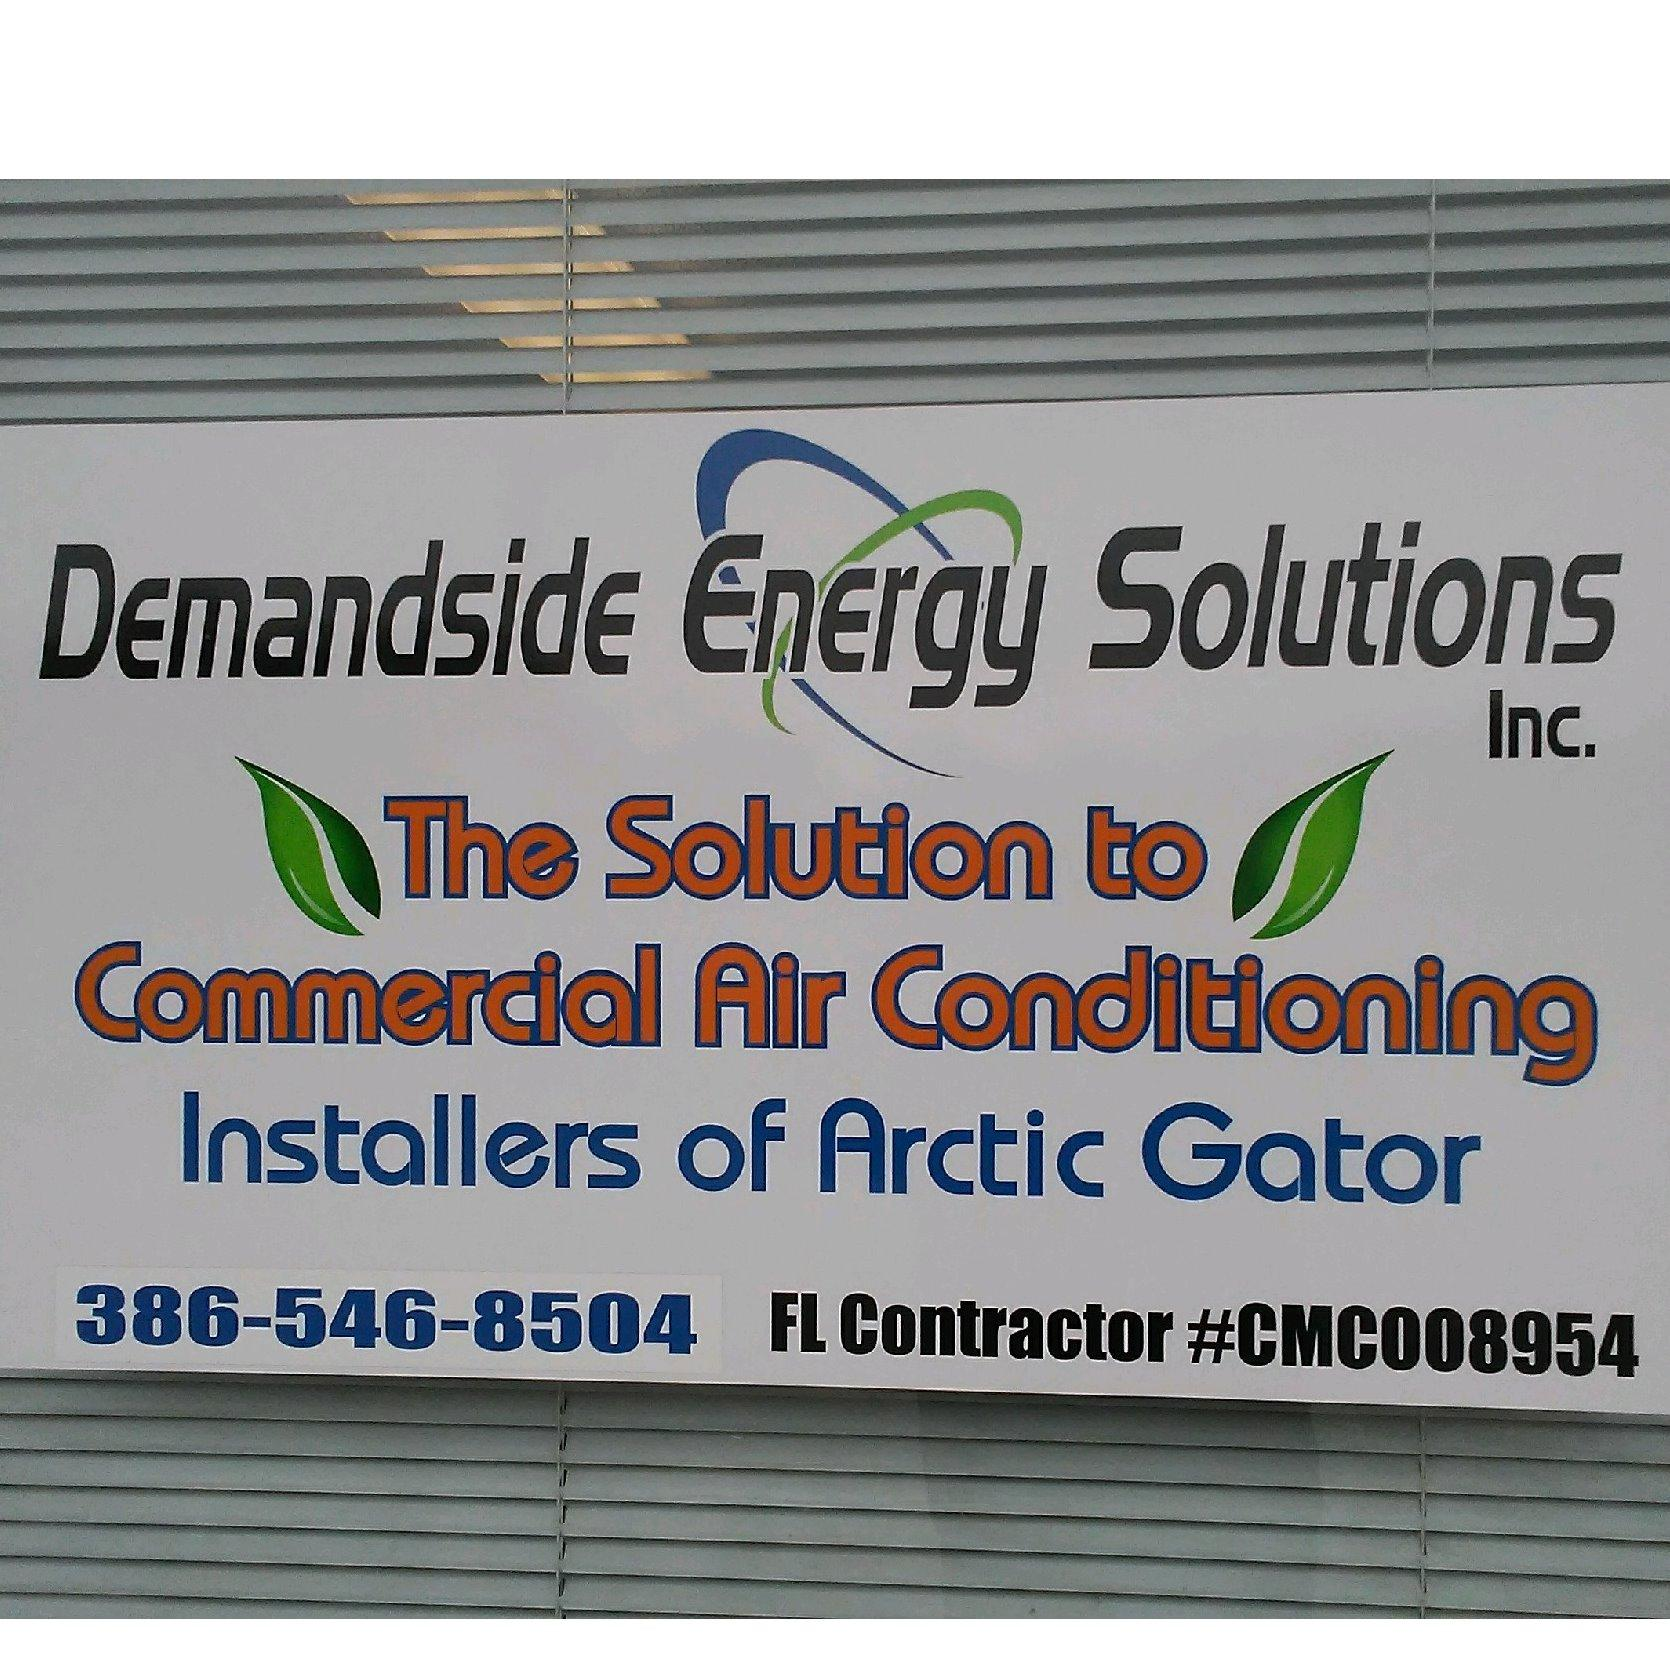 Demandside Energy Solutions